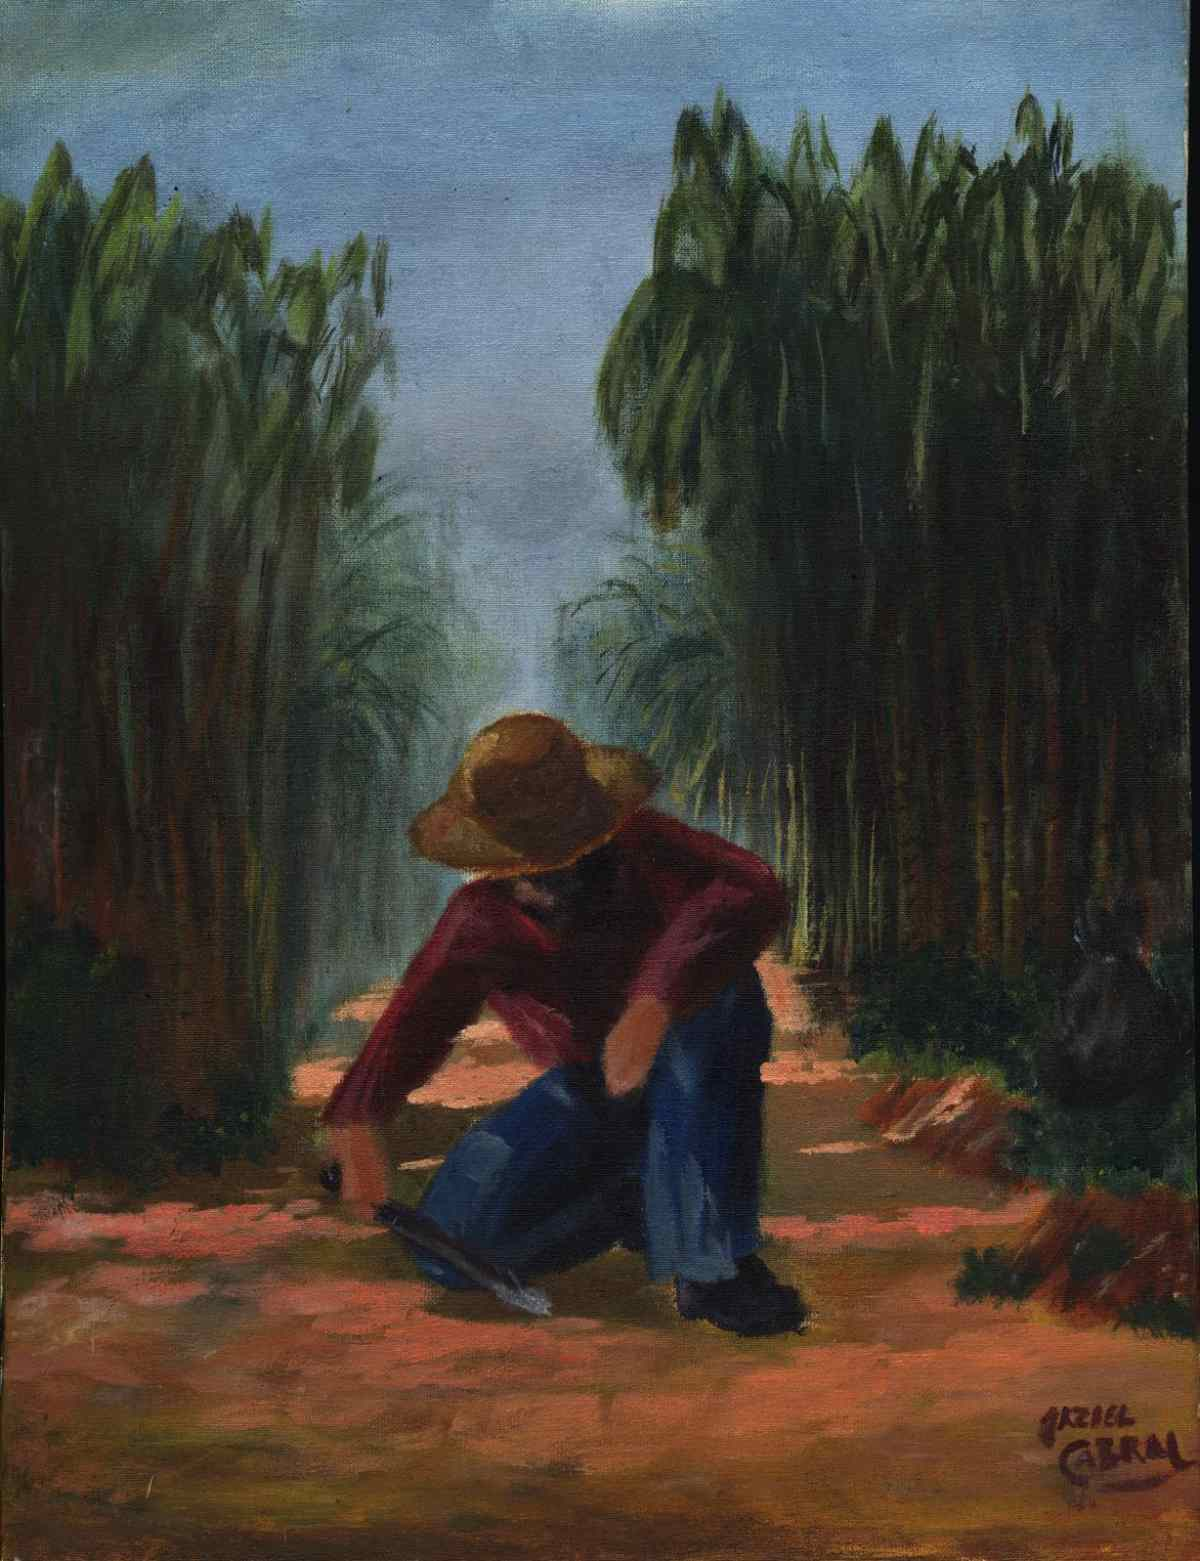 a painting by a young artist